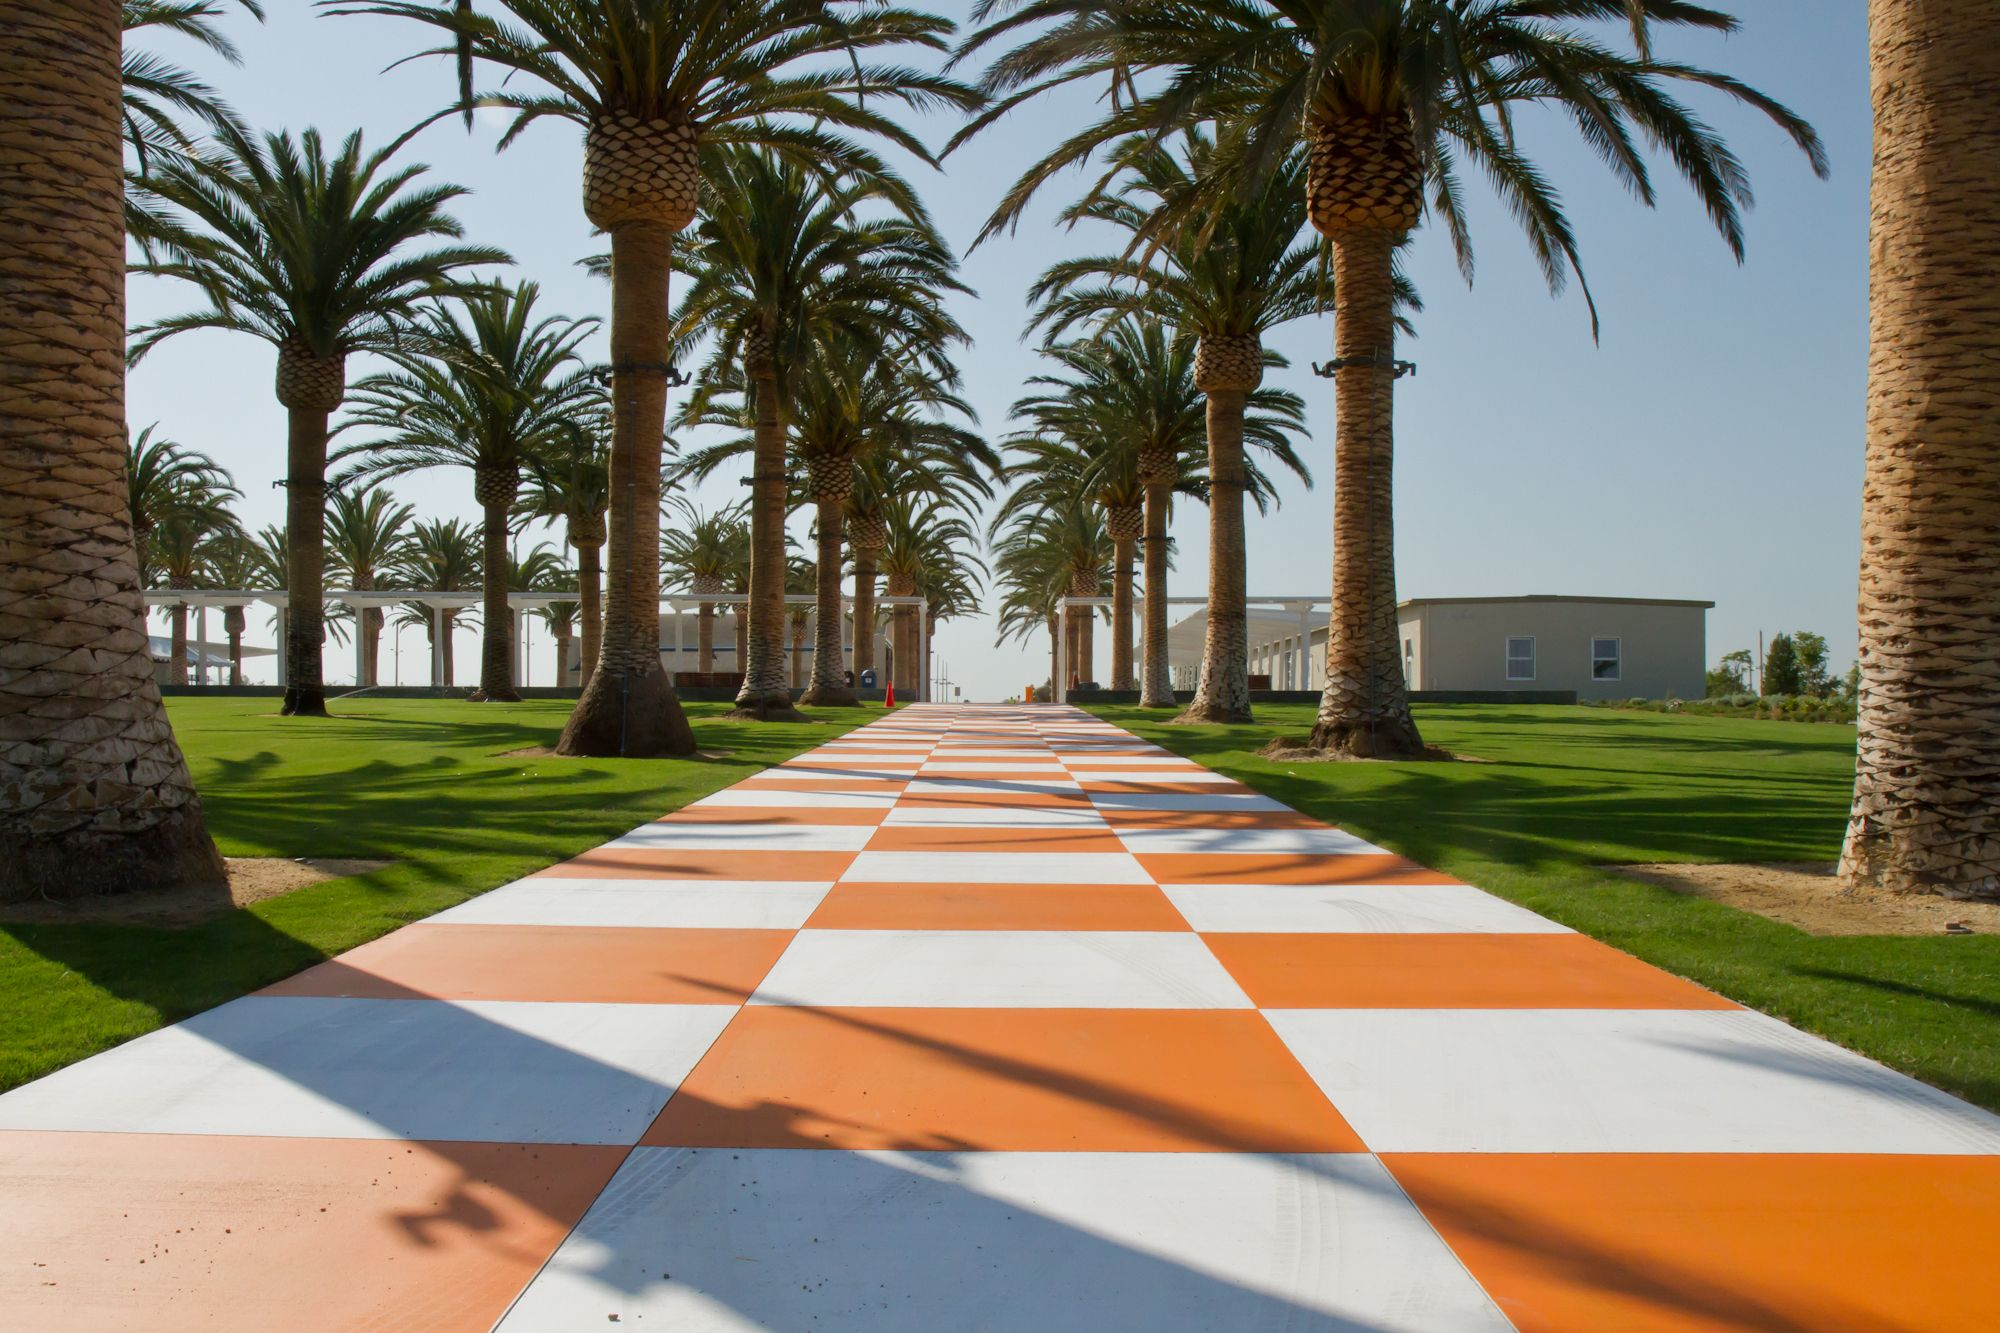 The checkered walkway at the Palm Court Arts Complex